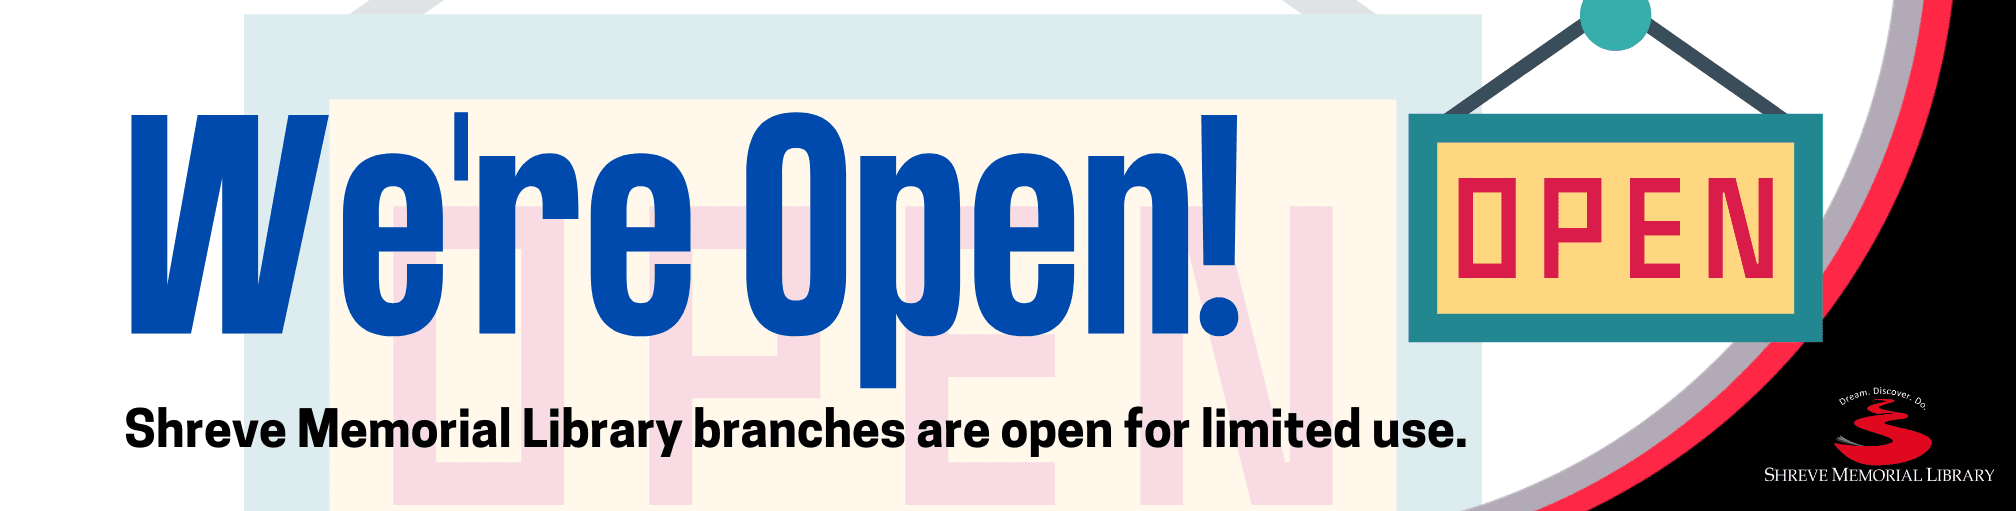 Shreve Memorial Library branches are open for limited use.